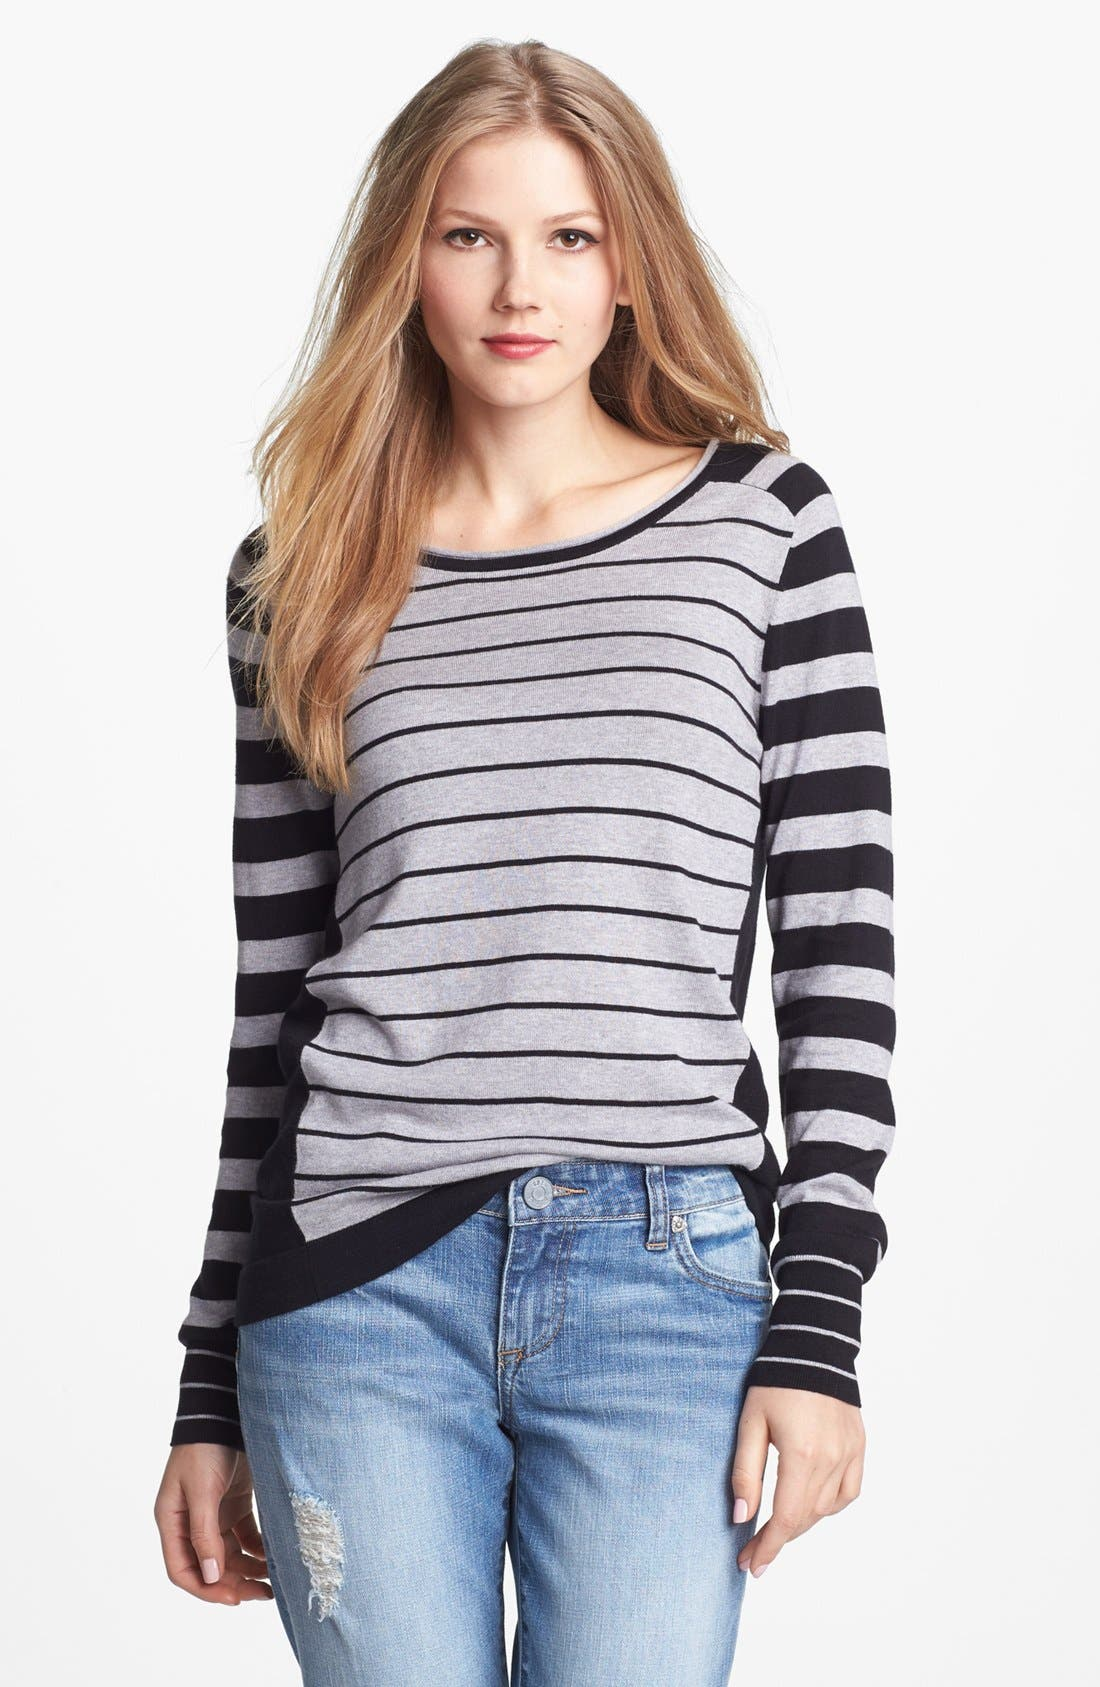 Main Image - Vince Camuto Mixed Stripe Colorblock Sweater